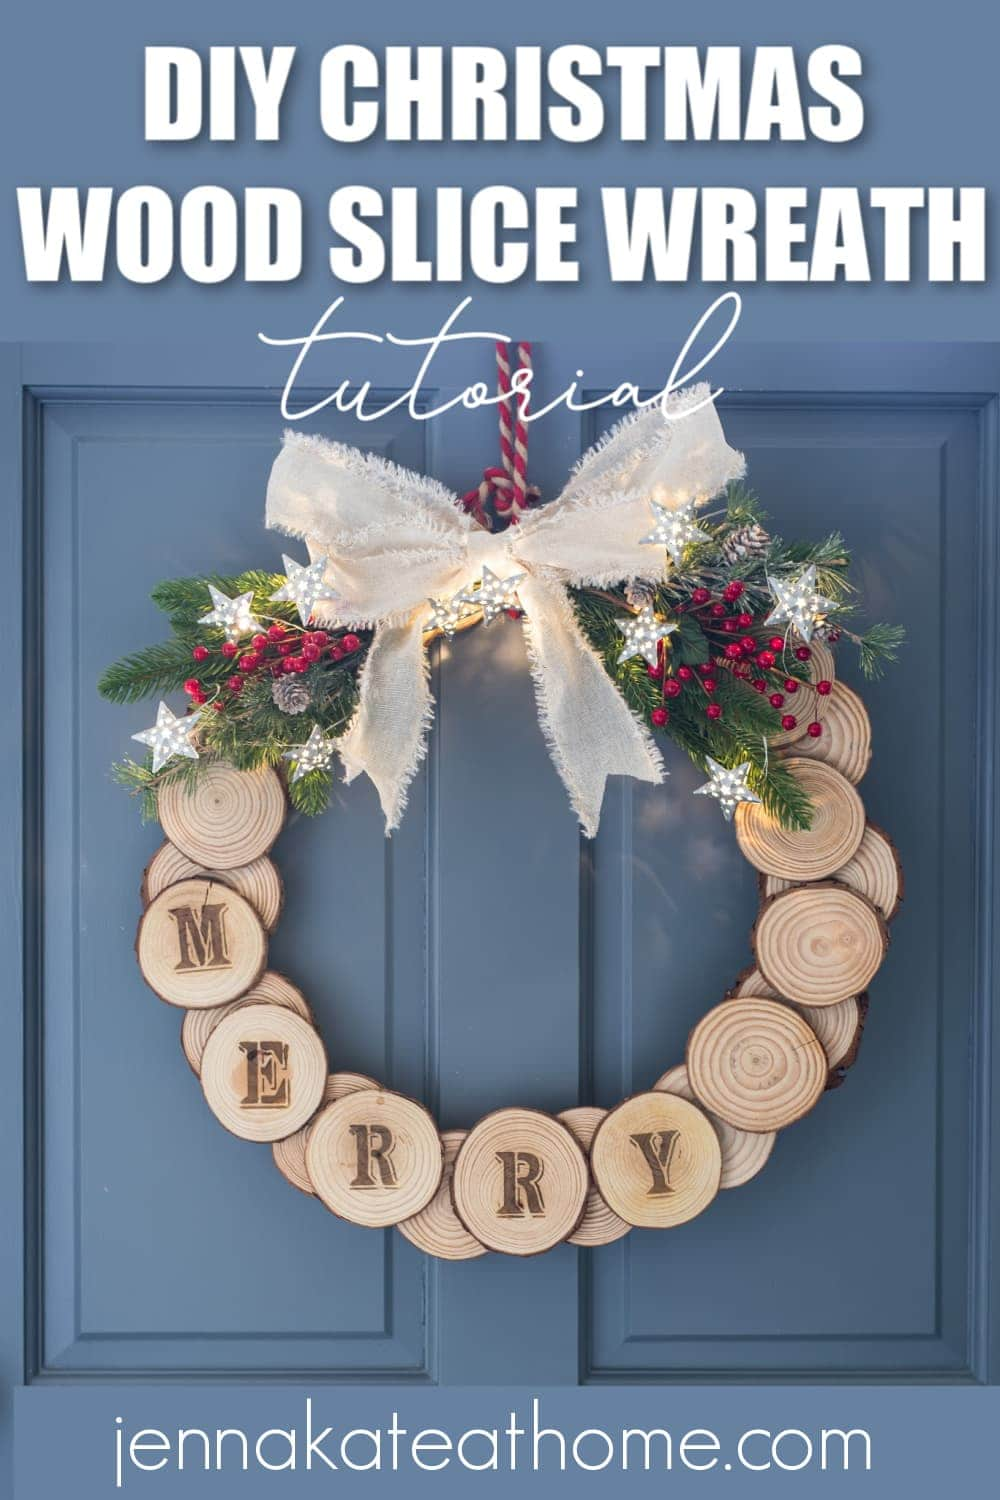 diy christmas wood slice wreath ideas